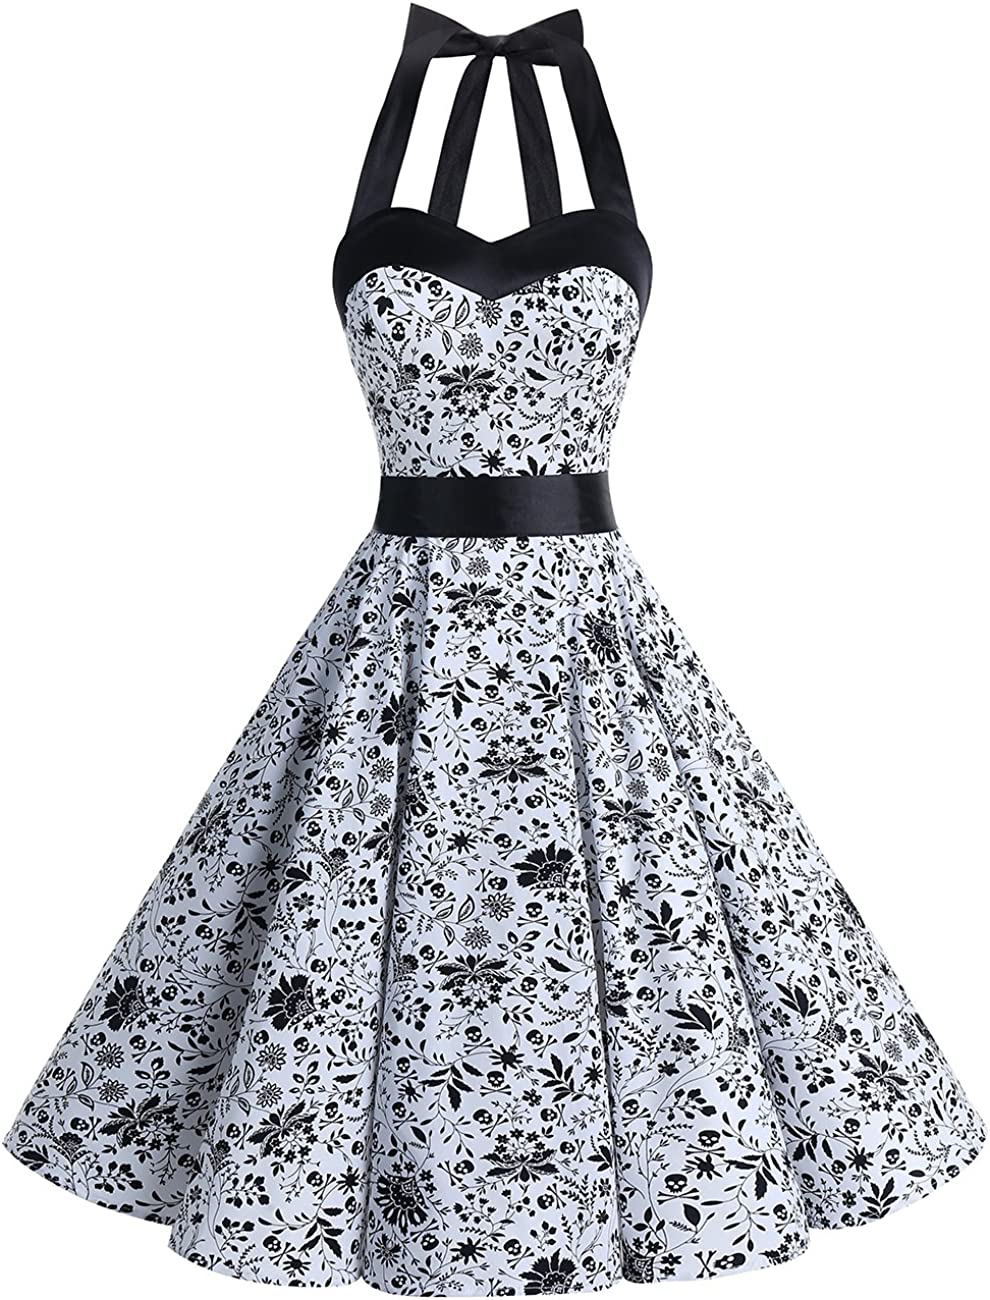 TALLA M. DRESSTELLS® Halter 50s Rockabilly Polka Dots Audrey Dress Retro Cocktail Dress White Skull M